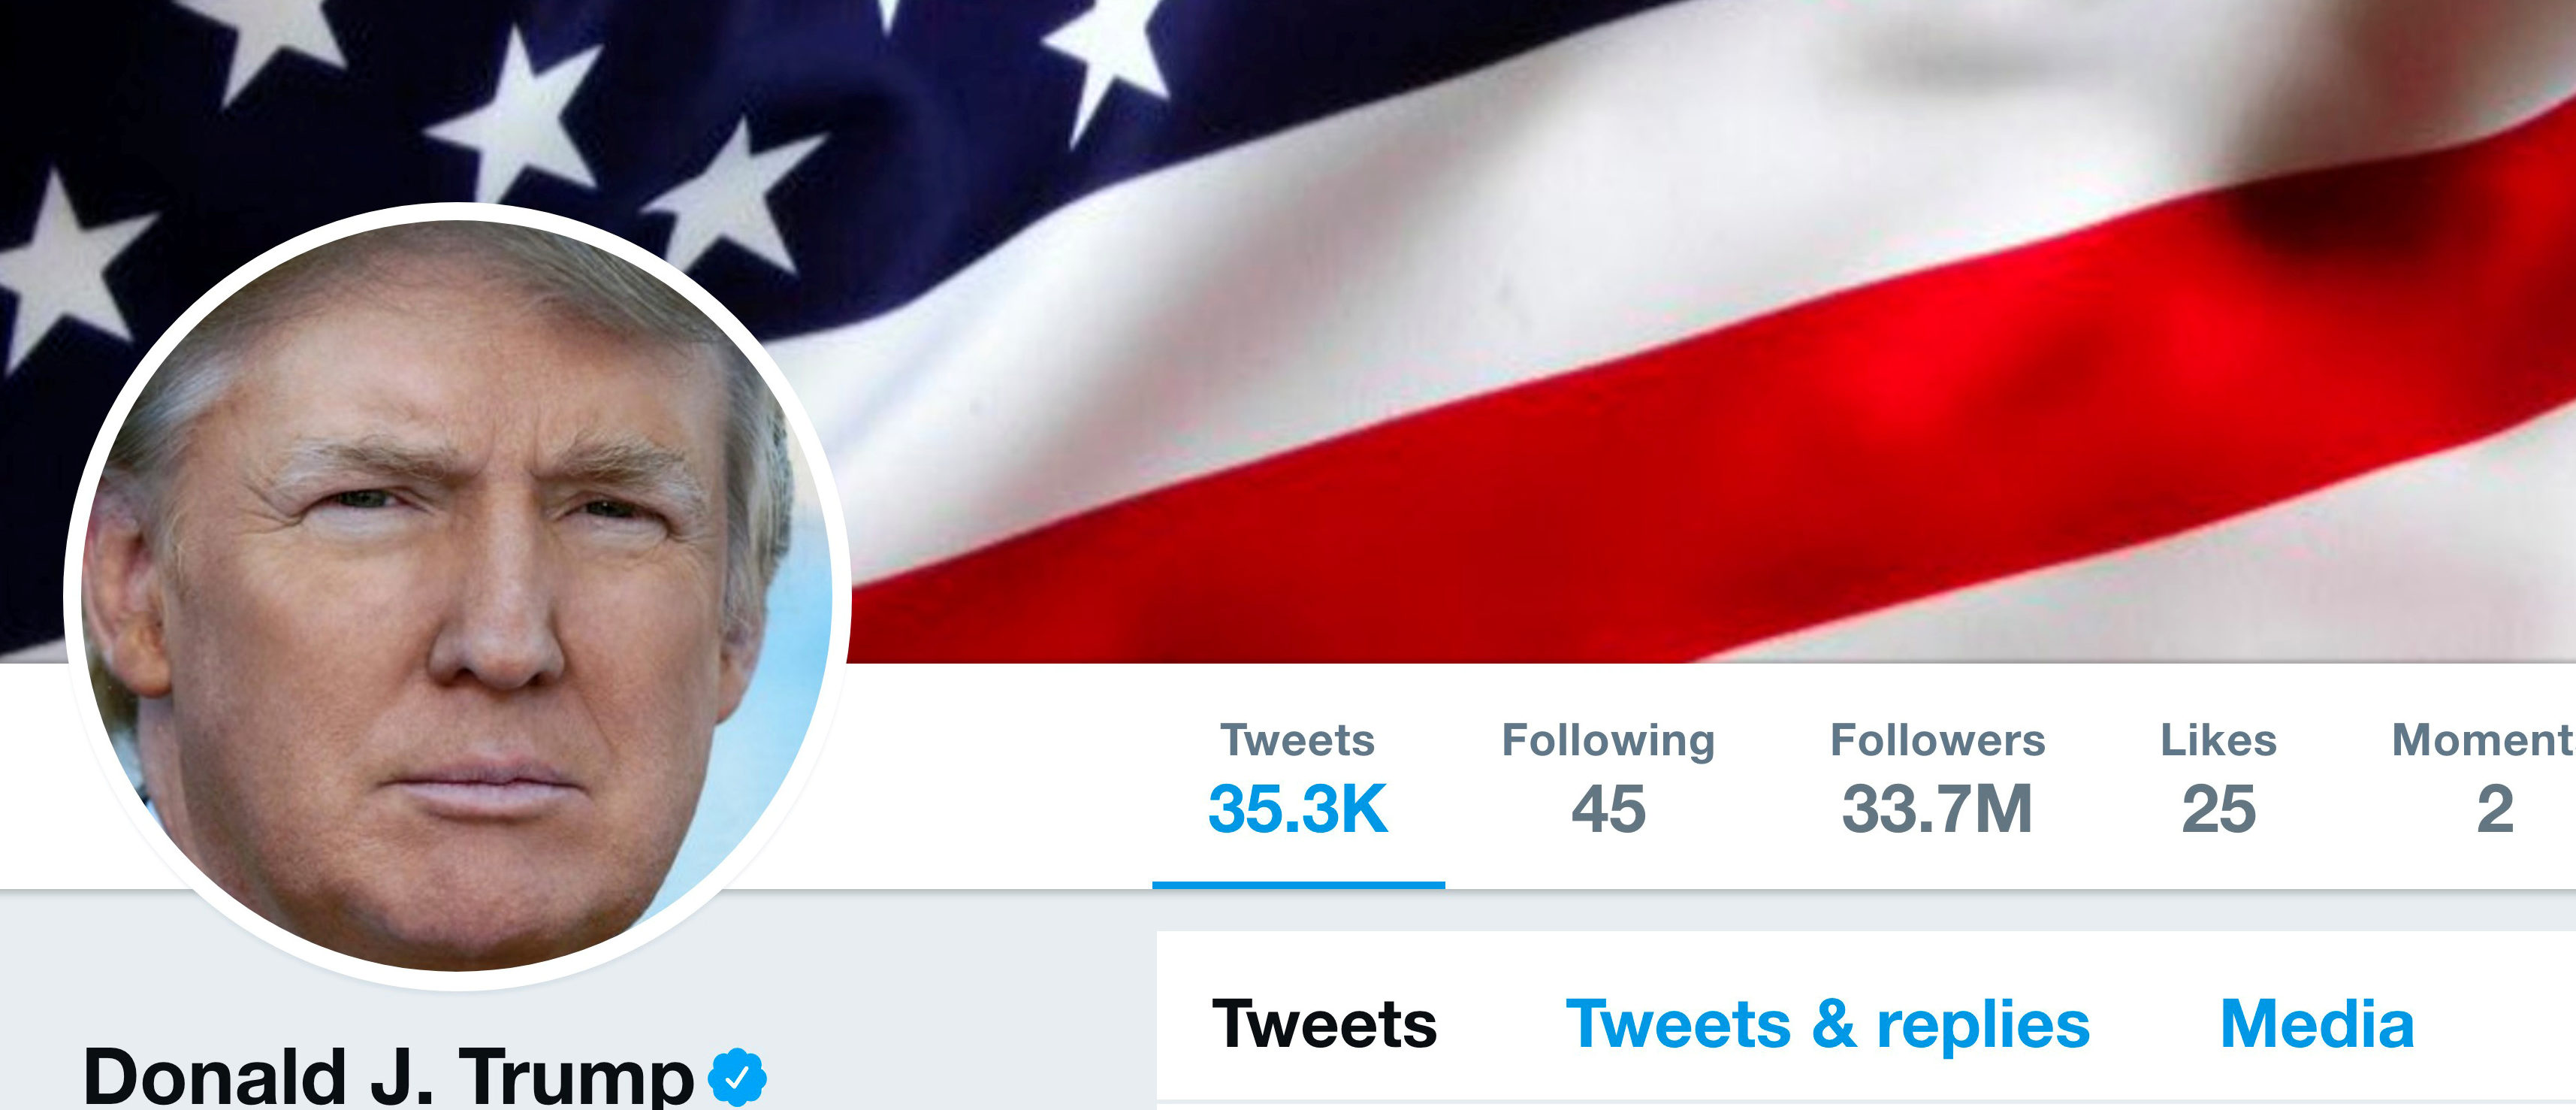 The masthead of U.S. President Donald Trump's @realDonaldTrump Twitter account is seen on July 11, 2017.  @realDonaldTrump/Handout via REUTERS    ATTENTION EDITORS - THIS IMAGE WAS PROVIDED BY A THIRD PARTY - RC110AFE5290